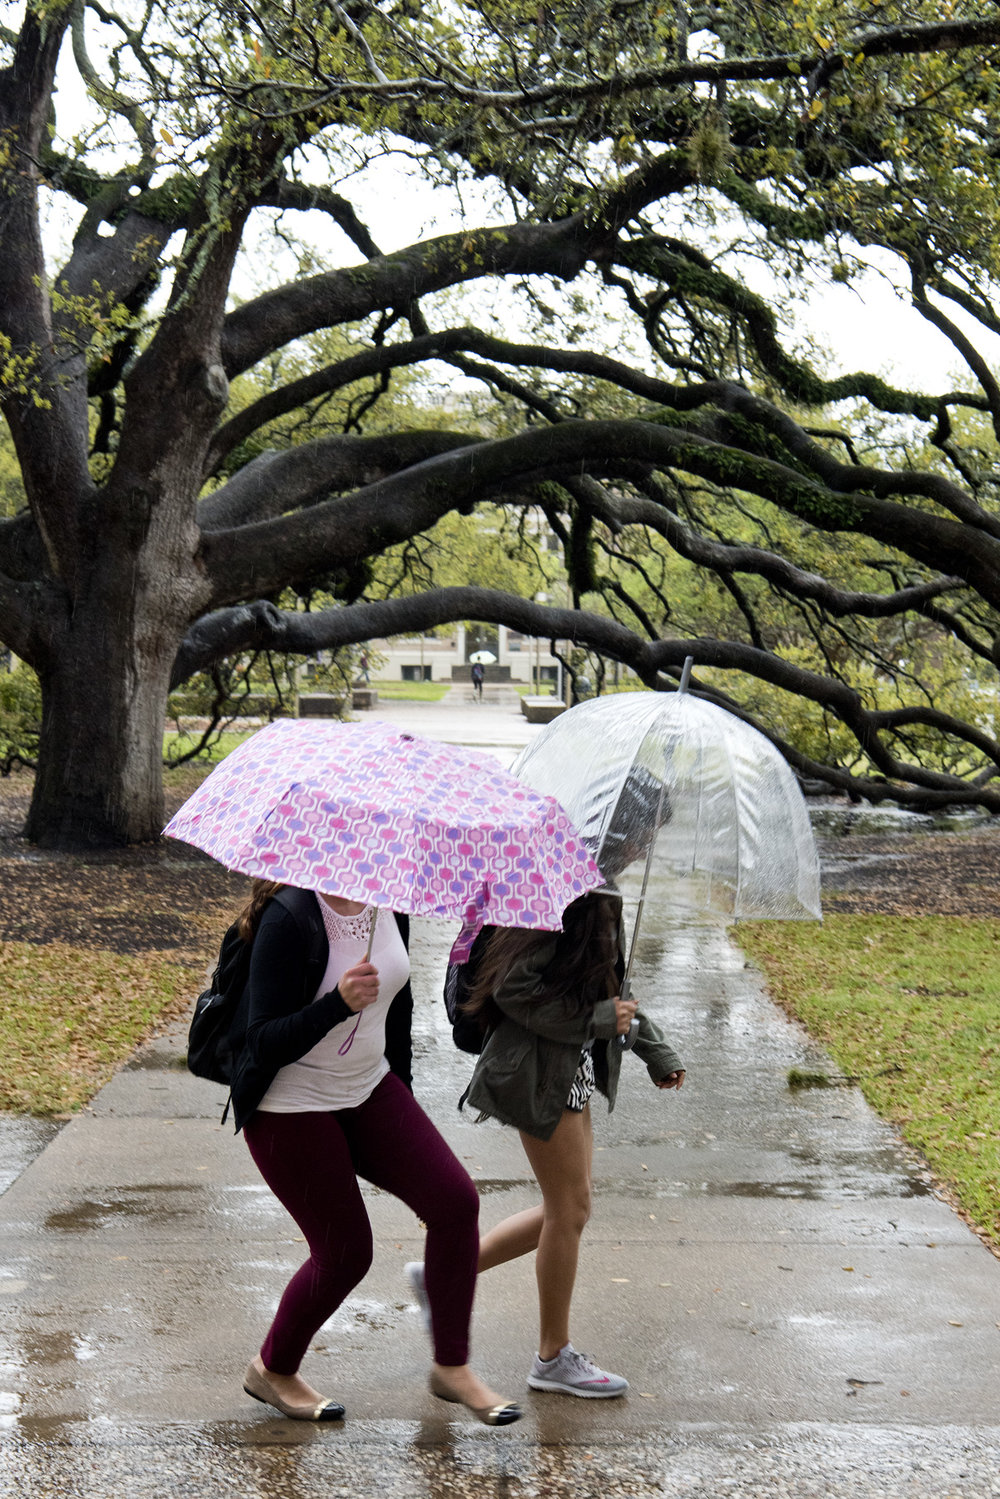 Texas A&M University juniors Leticia Meza, left, and Francisca Yanez walk past the Century Tree on Texas A&M's campus between classes, Wednesday, March 9, 2016, in College Station, Texas.